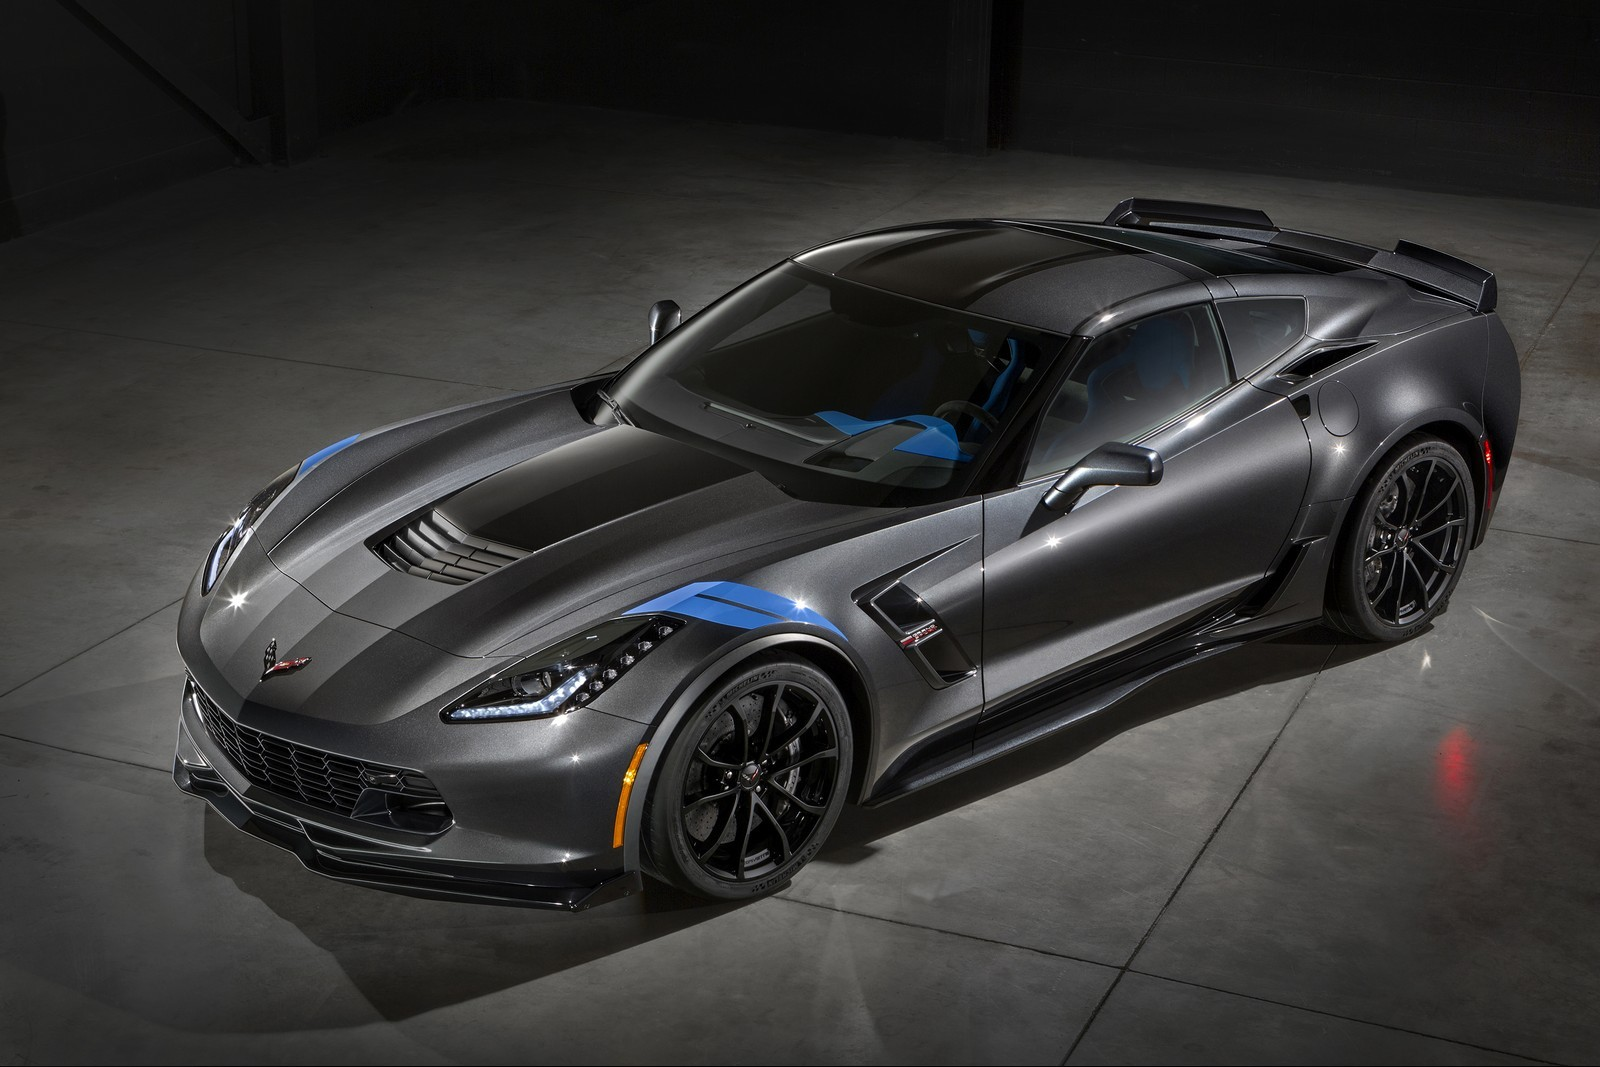 2017 Chevrolet Corvette Stingray EU Version photo - 1